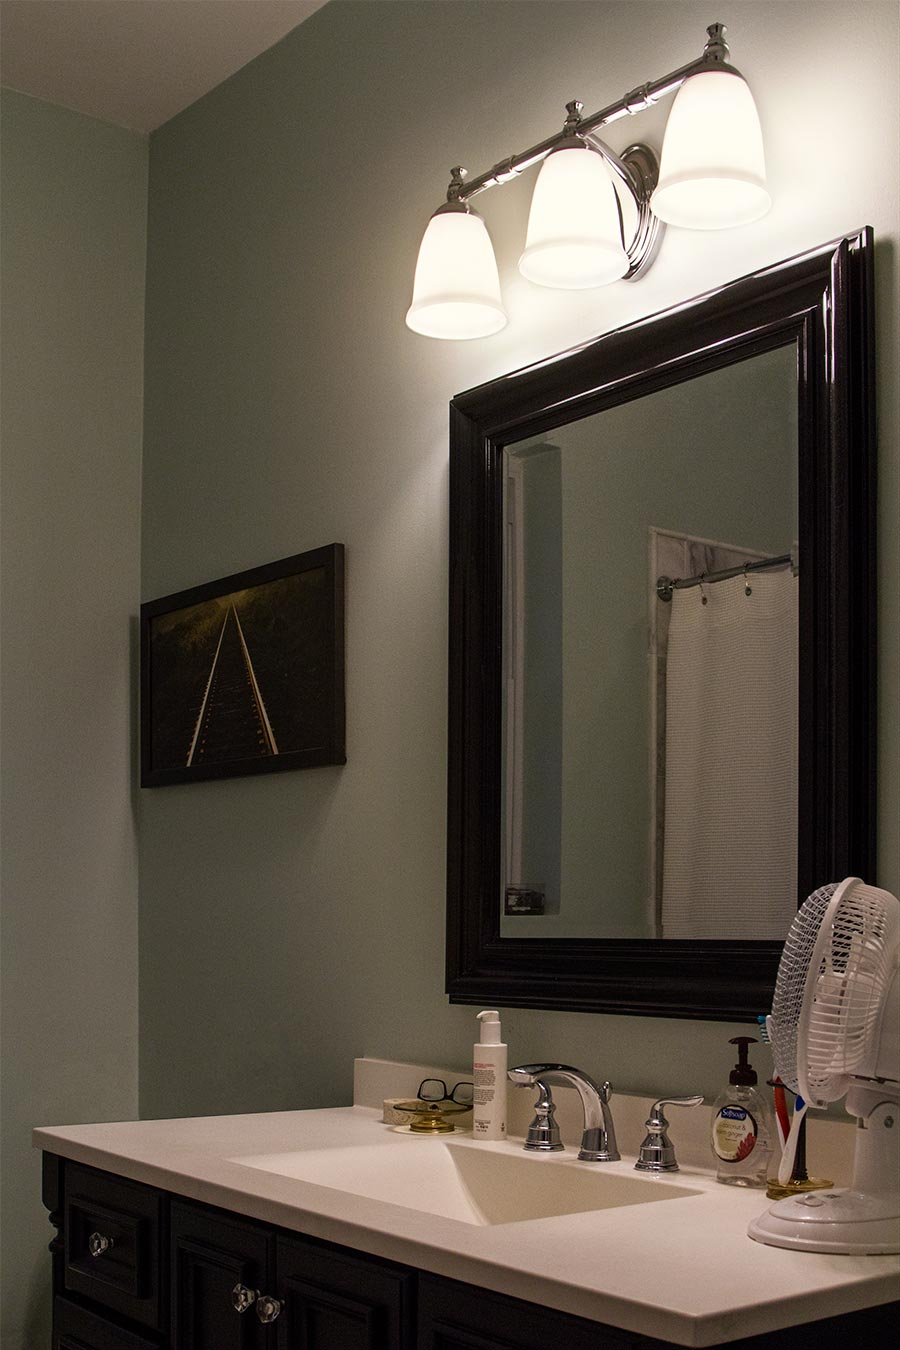 Led vintage light bulb a19 led globe bulb w filament led 8w led filament bulb a19 led bulb with 8 watt filament led warm white shown in bathroom with bright white countertop and light blue walls mozeypictures Gallery